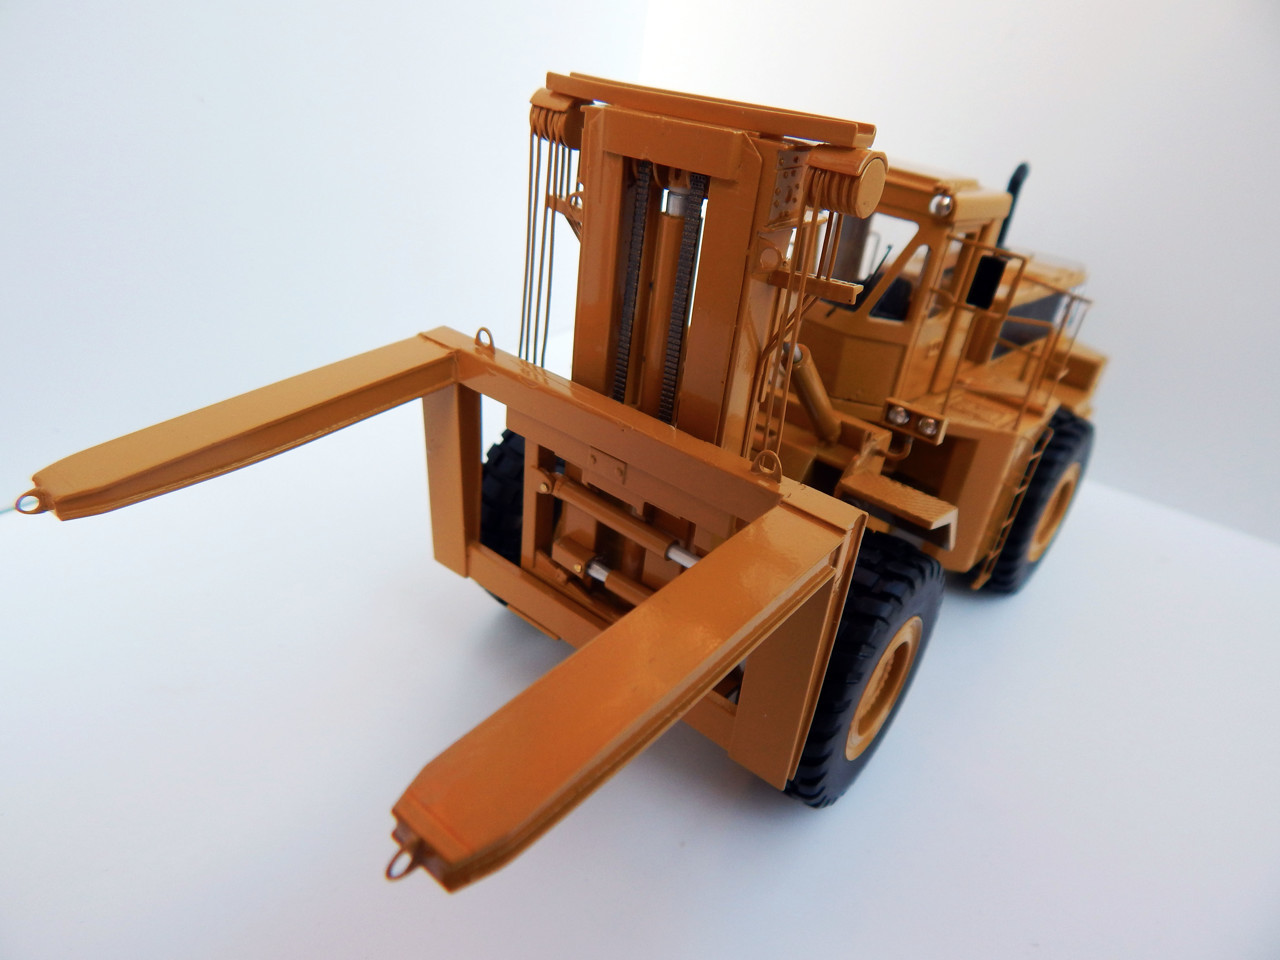 Picture of Cat DV43 wheel loader fork lift - yellow